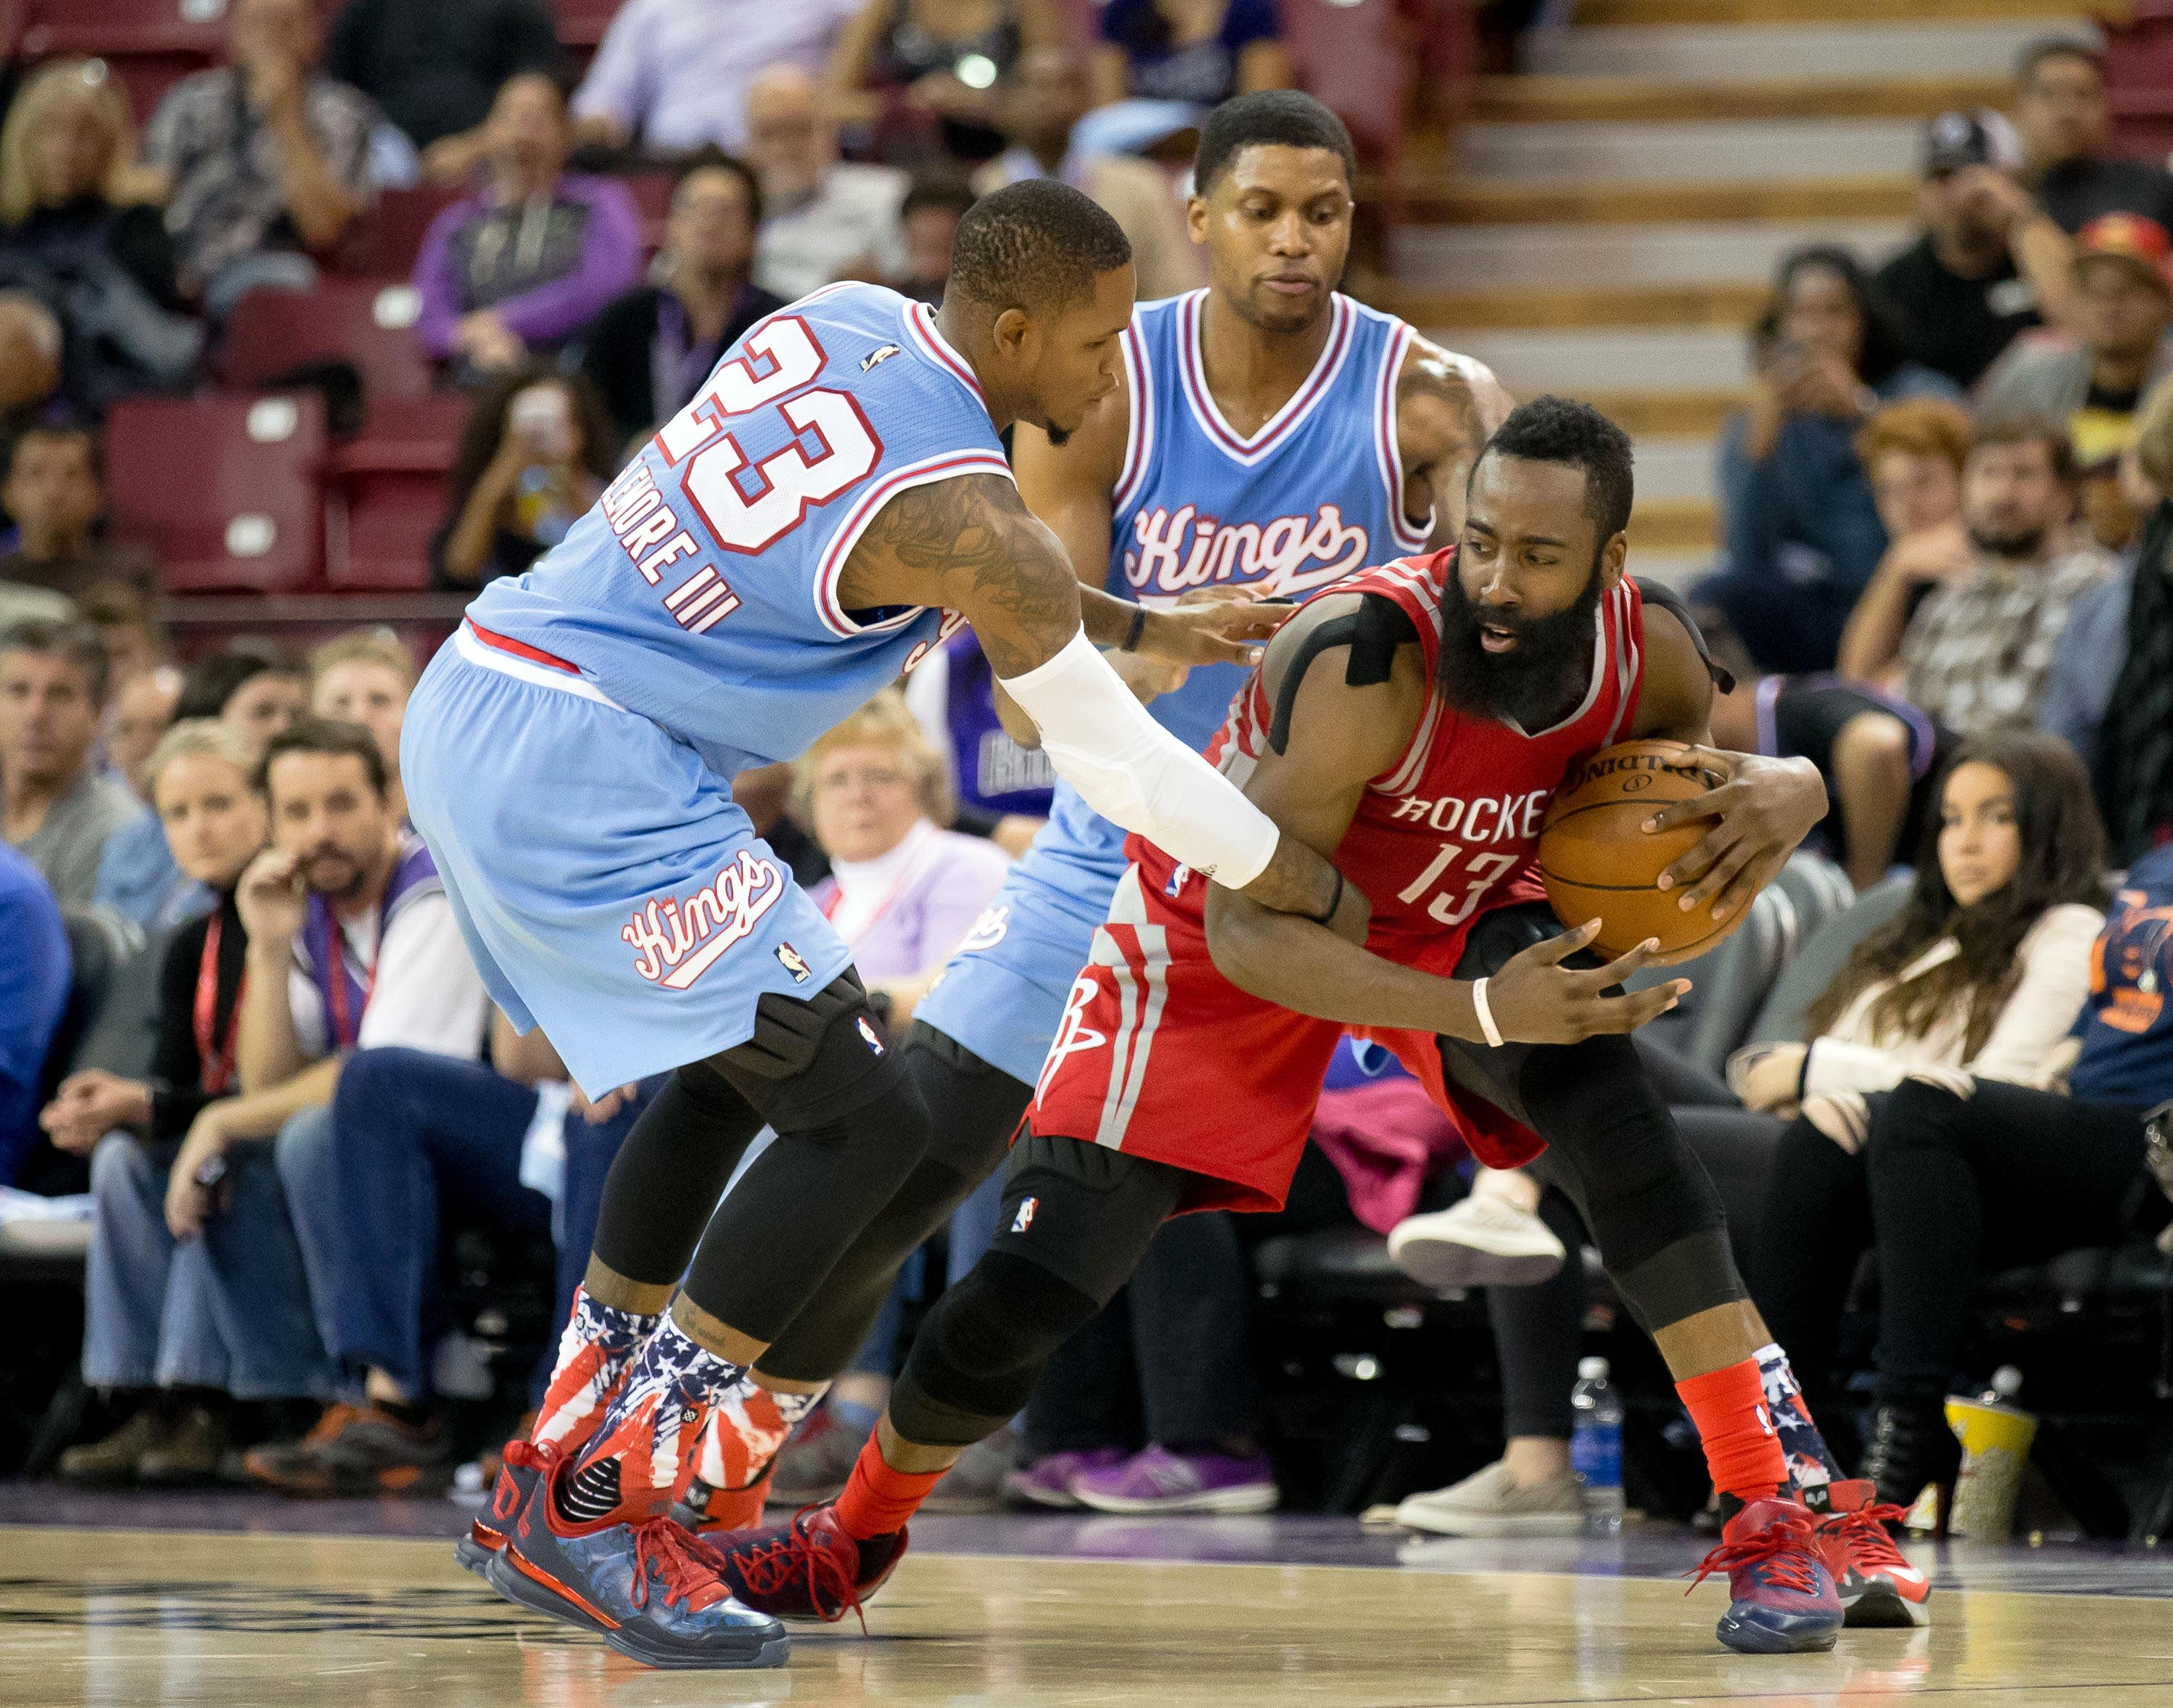 8907638-nba-houston-rockets-at-sacramento-kings